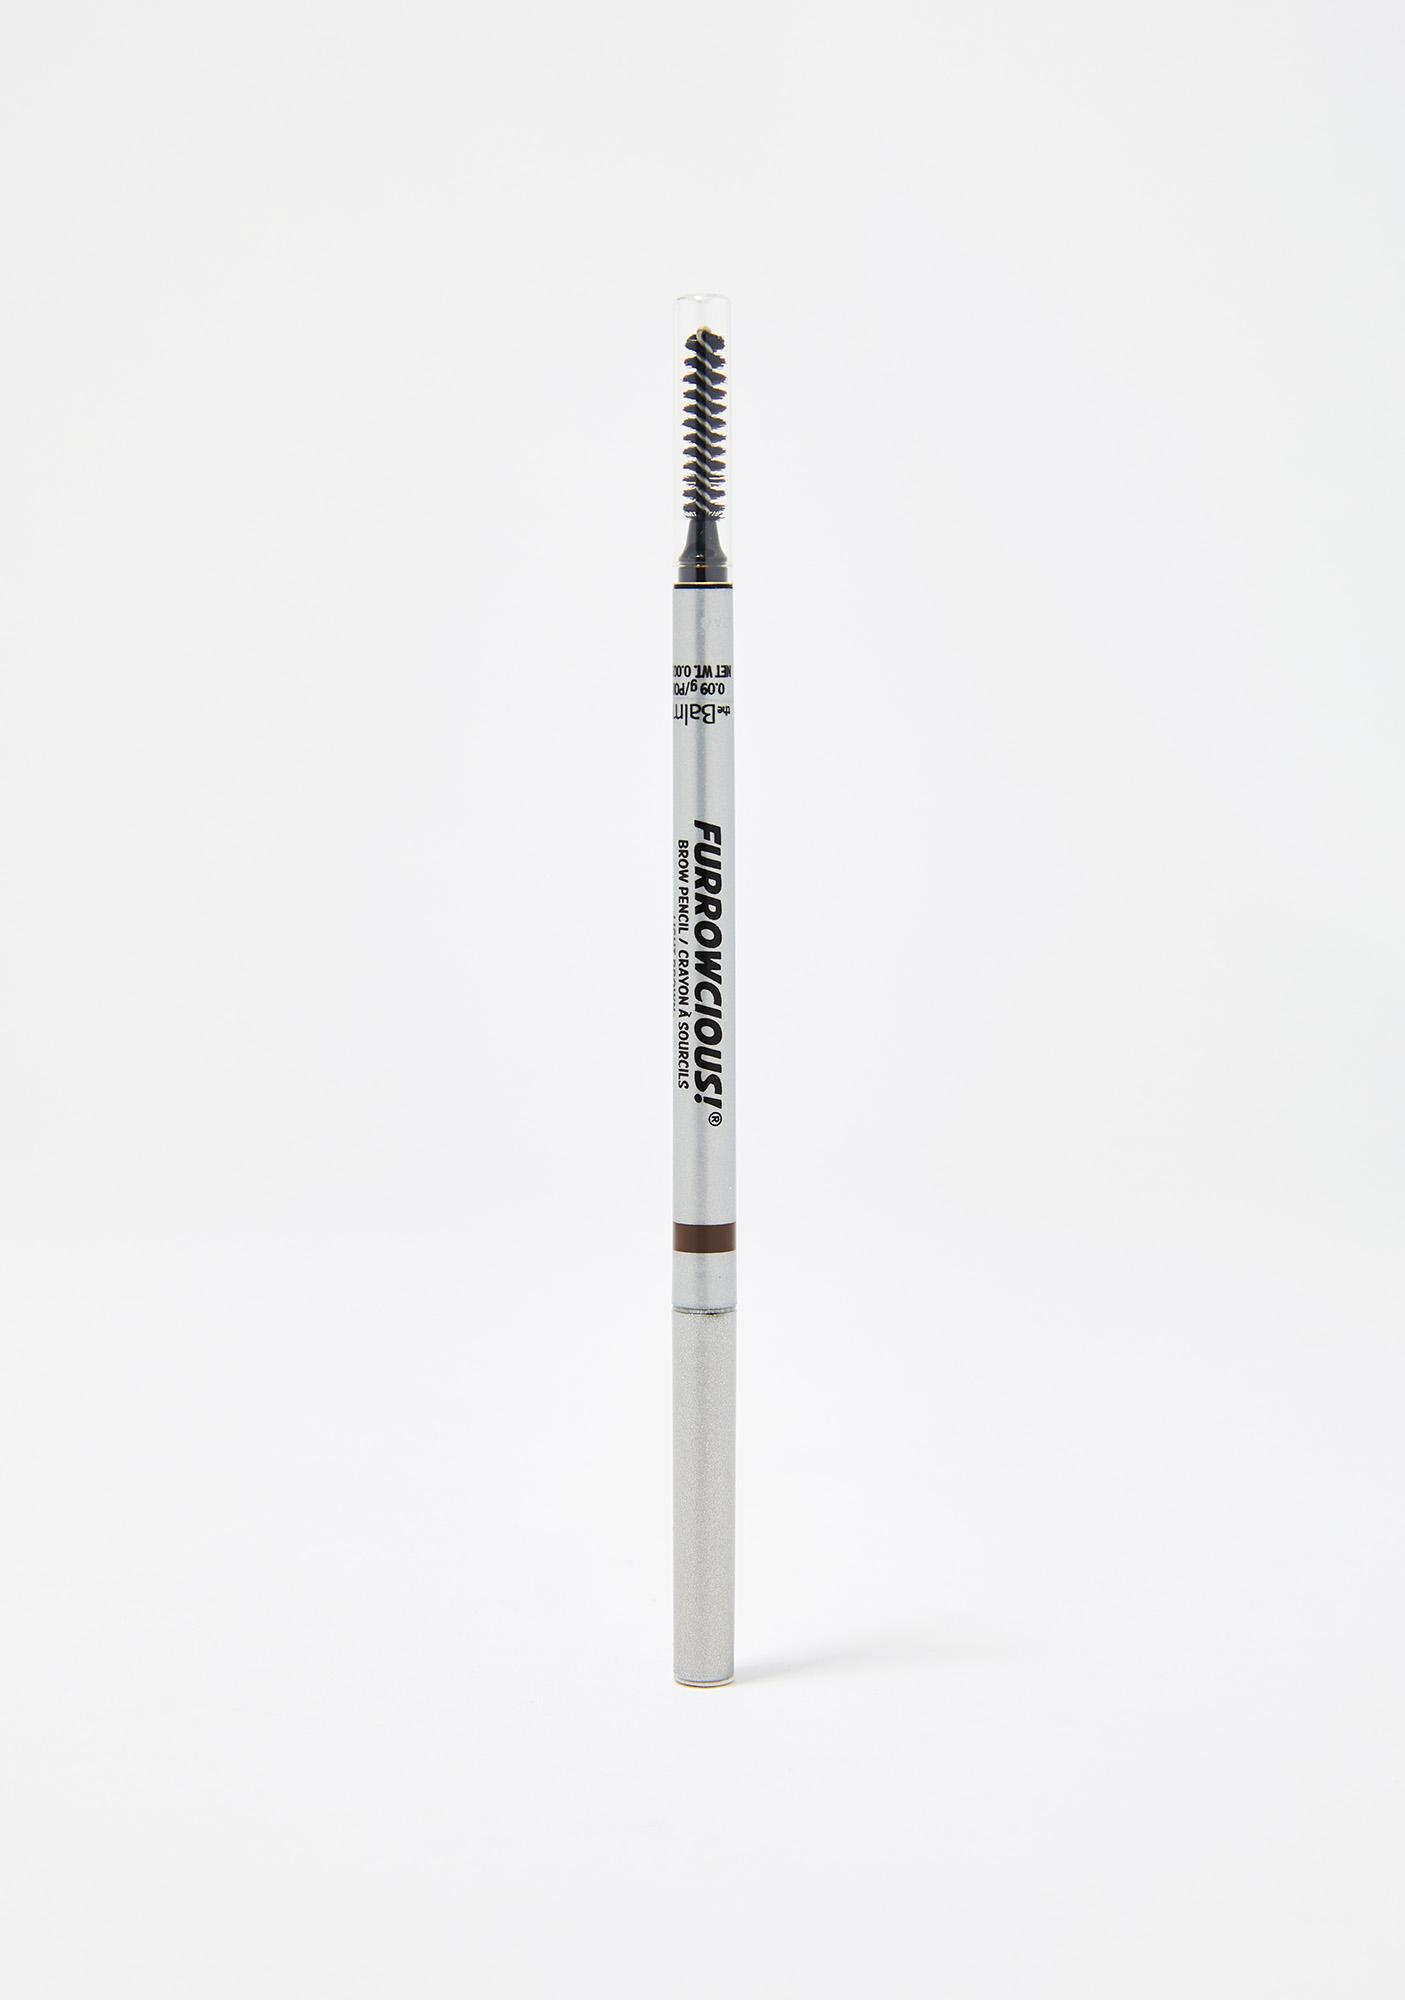 The Balm Caramel Furrowcious Brow Pencil With Spooley